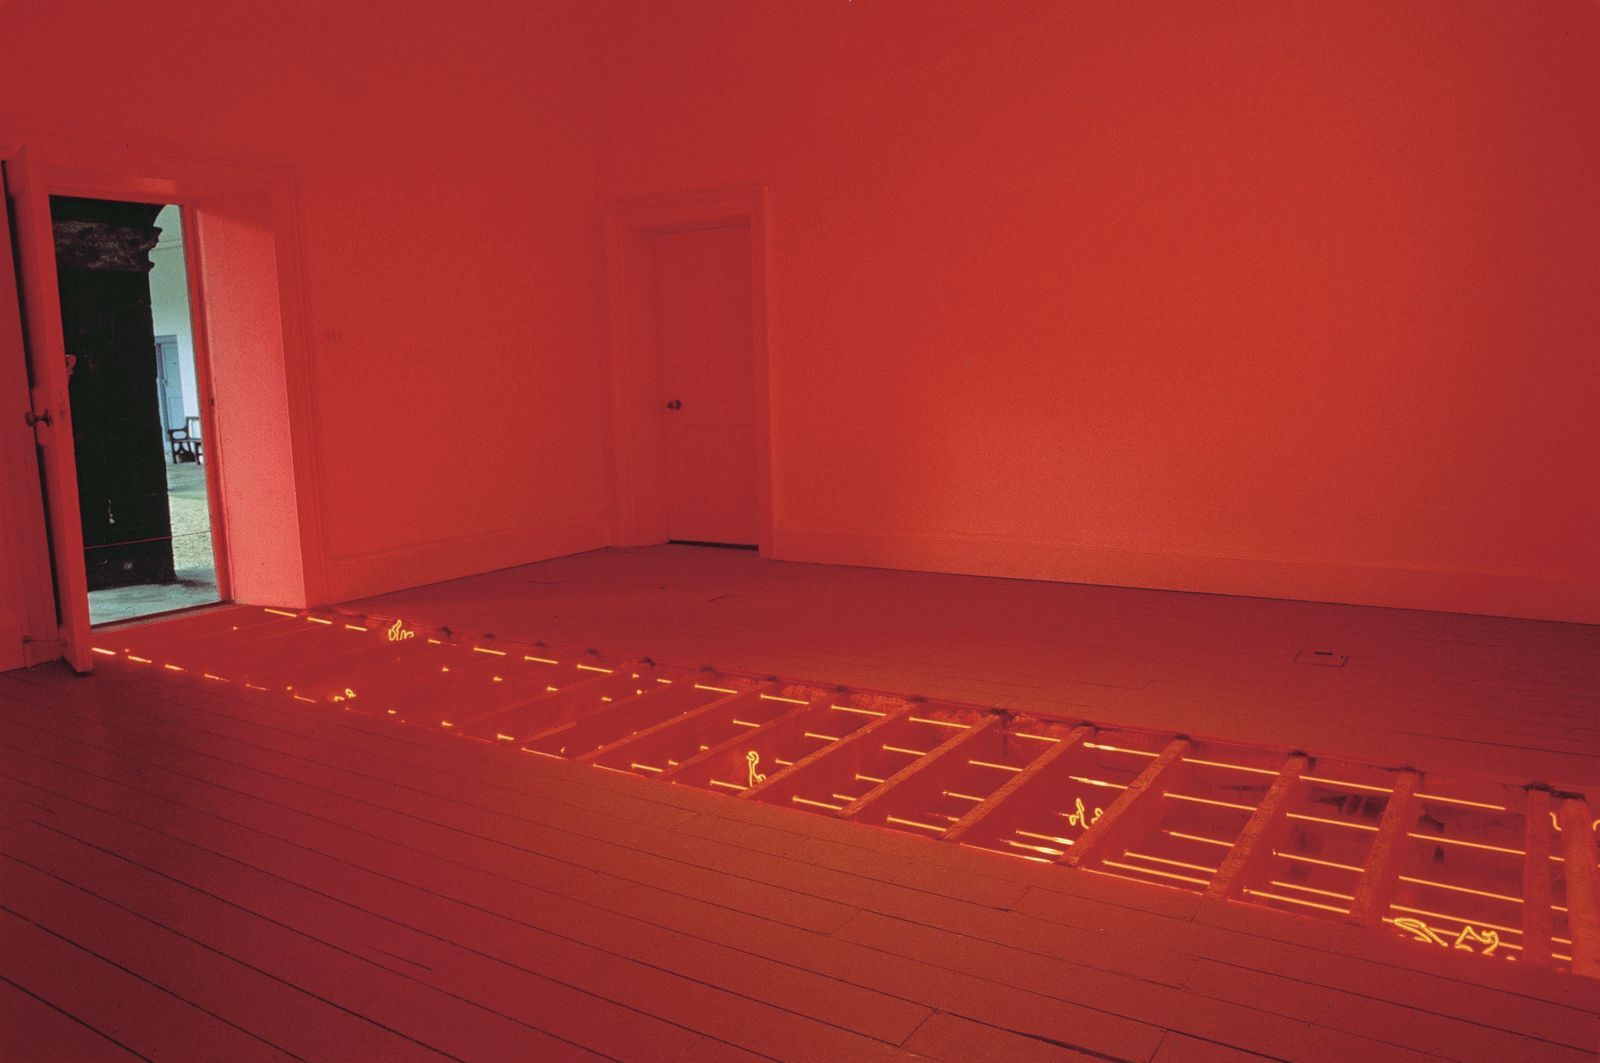 Vong Phaophanit, Line Writing, 1994